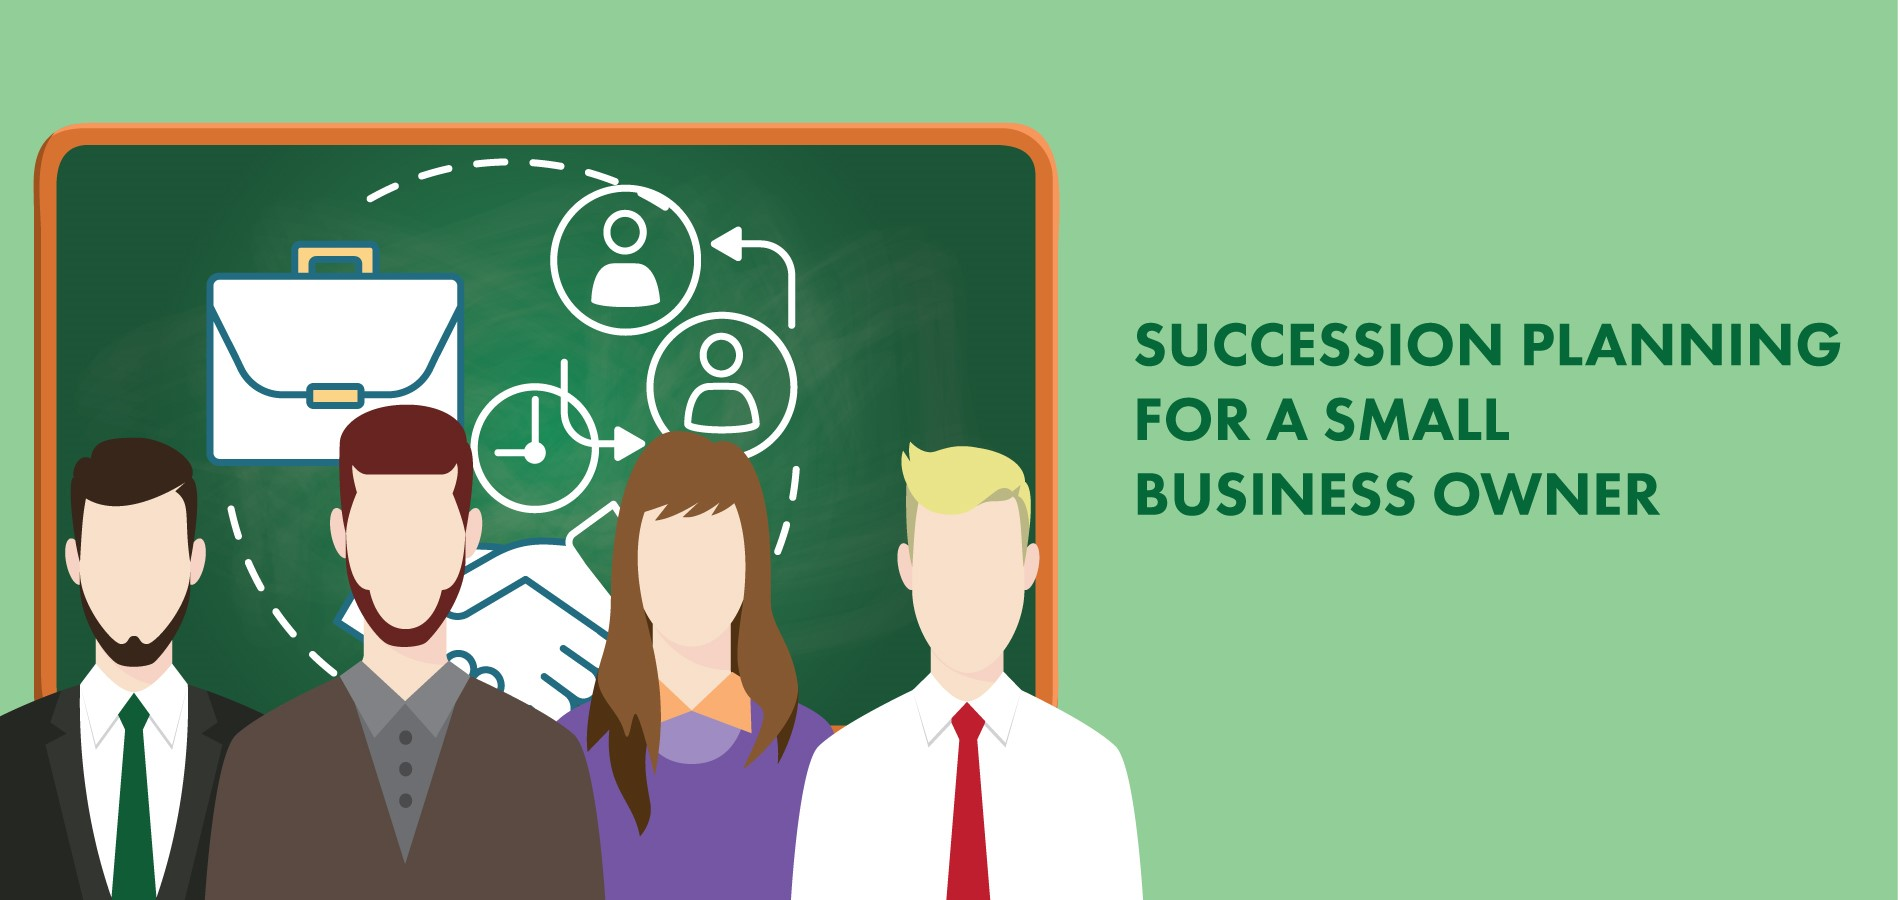 Succession Planning for a Small Business Owner